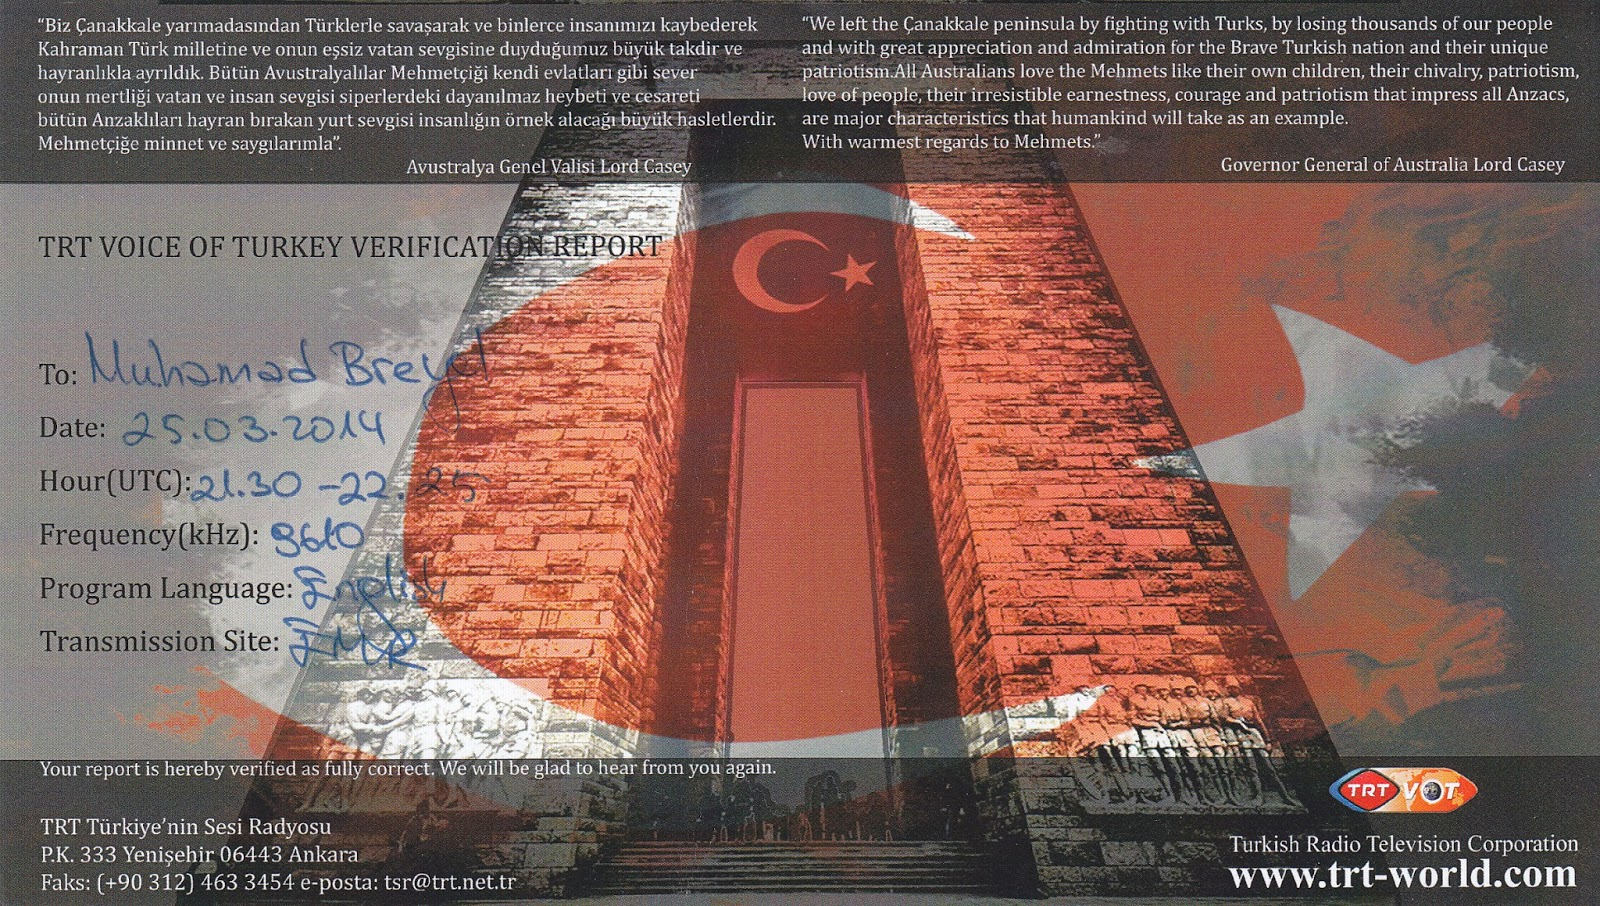 SOUTH EAST ASIA DXING  Voice of Turkey Voice of Turkey in Emirler was logged on 25 March 2014  After a rousing  interval tune and station ID at 21 30 UTC  Voice of Turkey began their  English